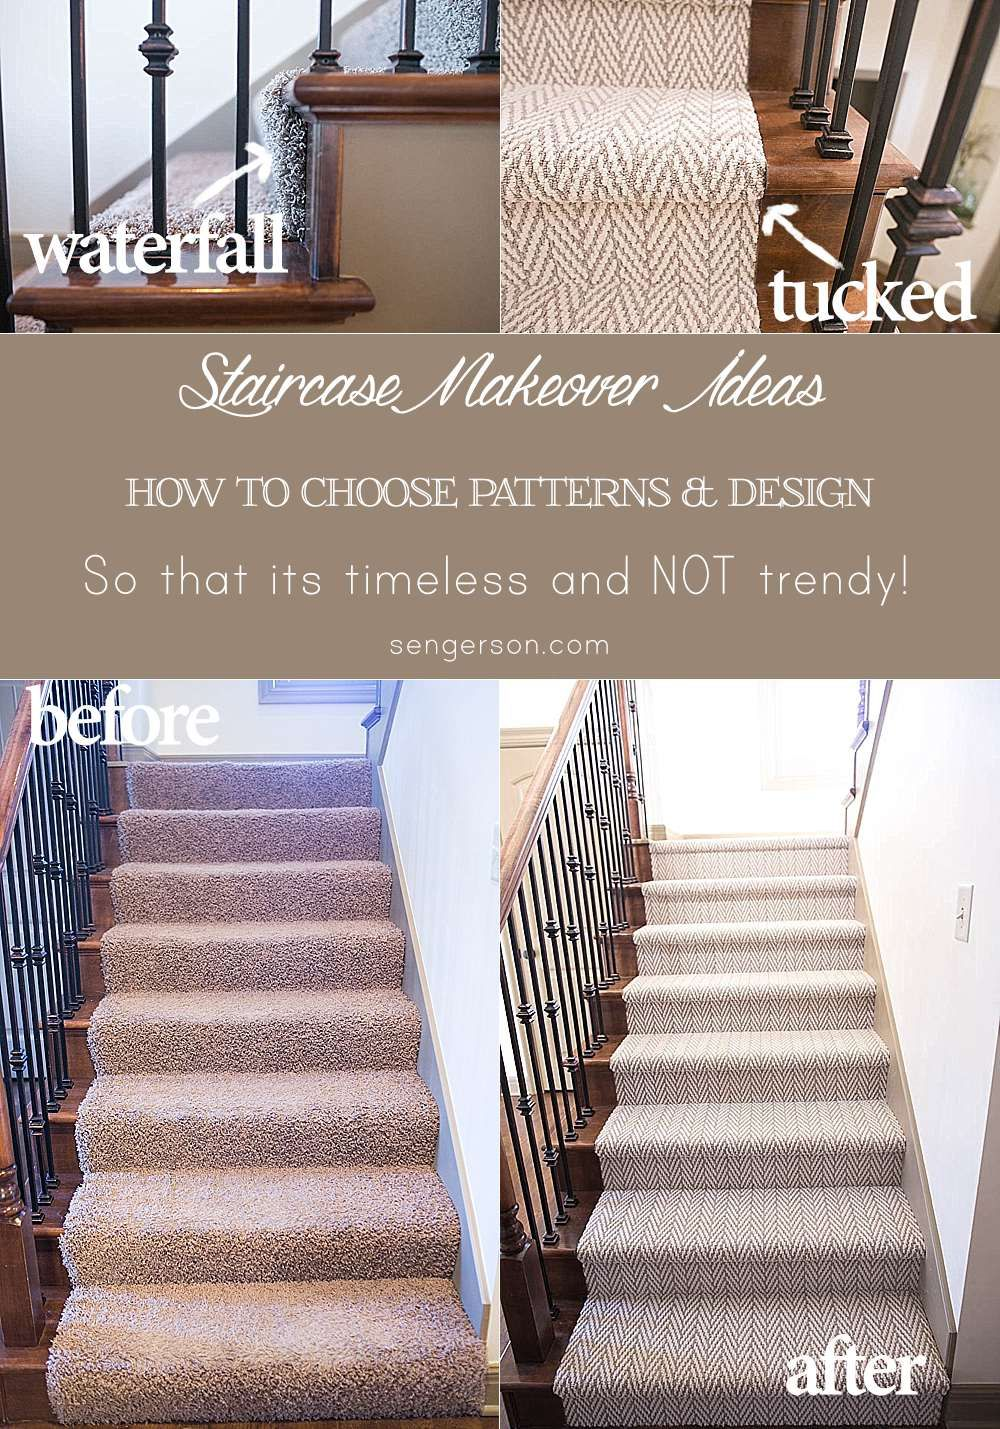 3 Tips On Renovating A Staircase From Choice Patterns Waterfall Versus Tucked Hollywood Style And Reasons To Consider Doing It Yourself Diy So